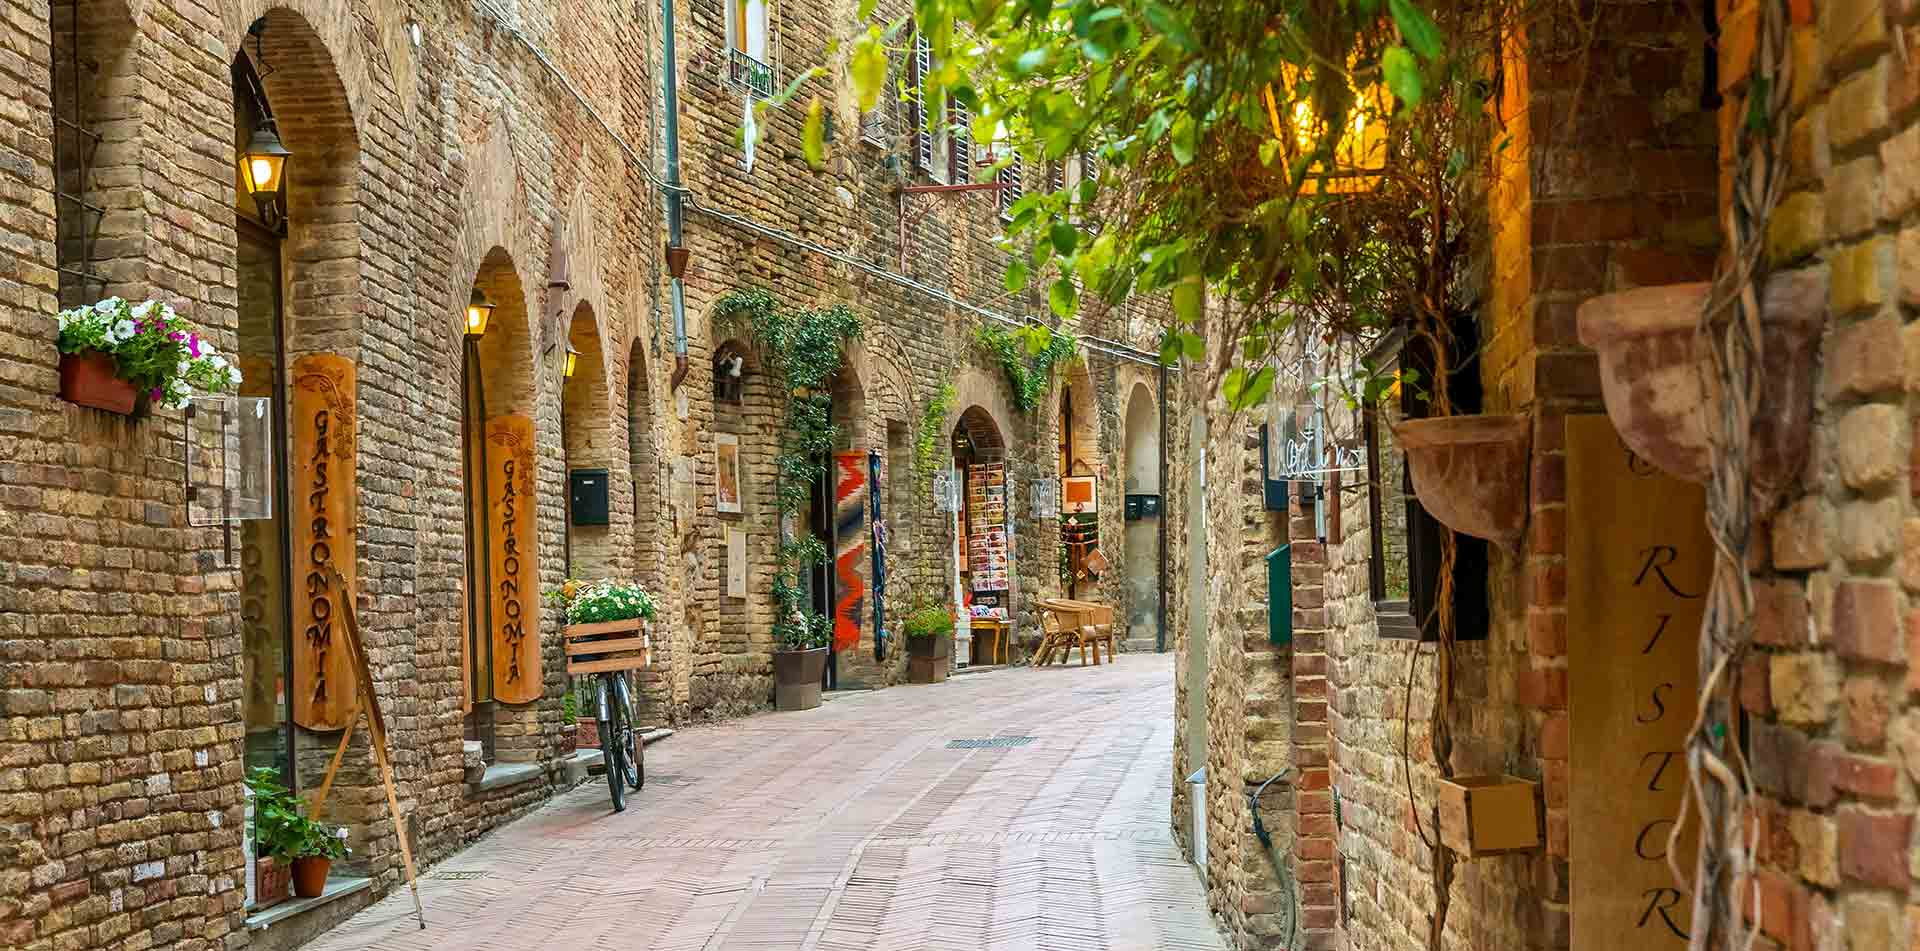 Europe Italy Tuscany Sienna local stone street in hillside town of San Gimignano - luxury vacation destinations